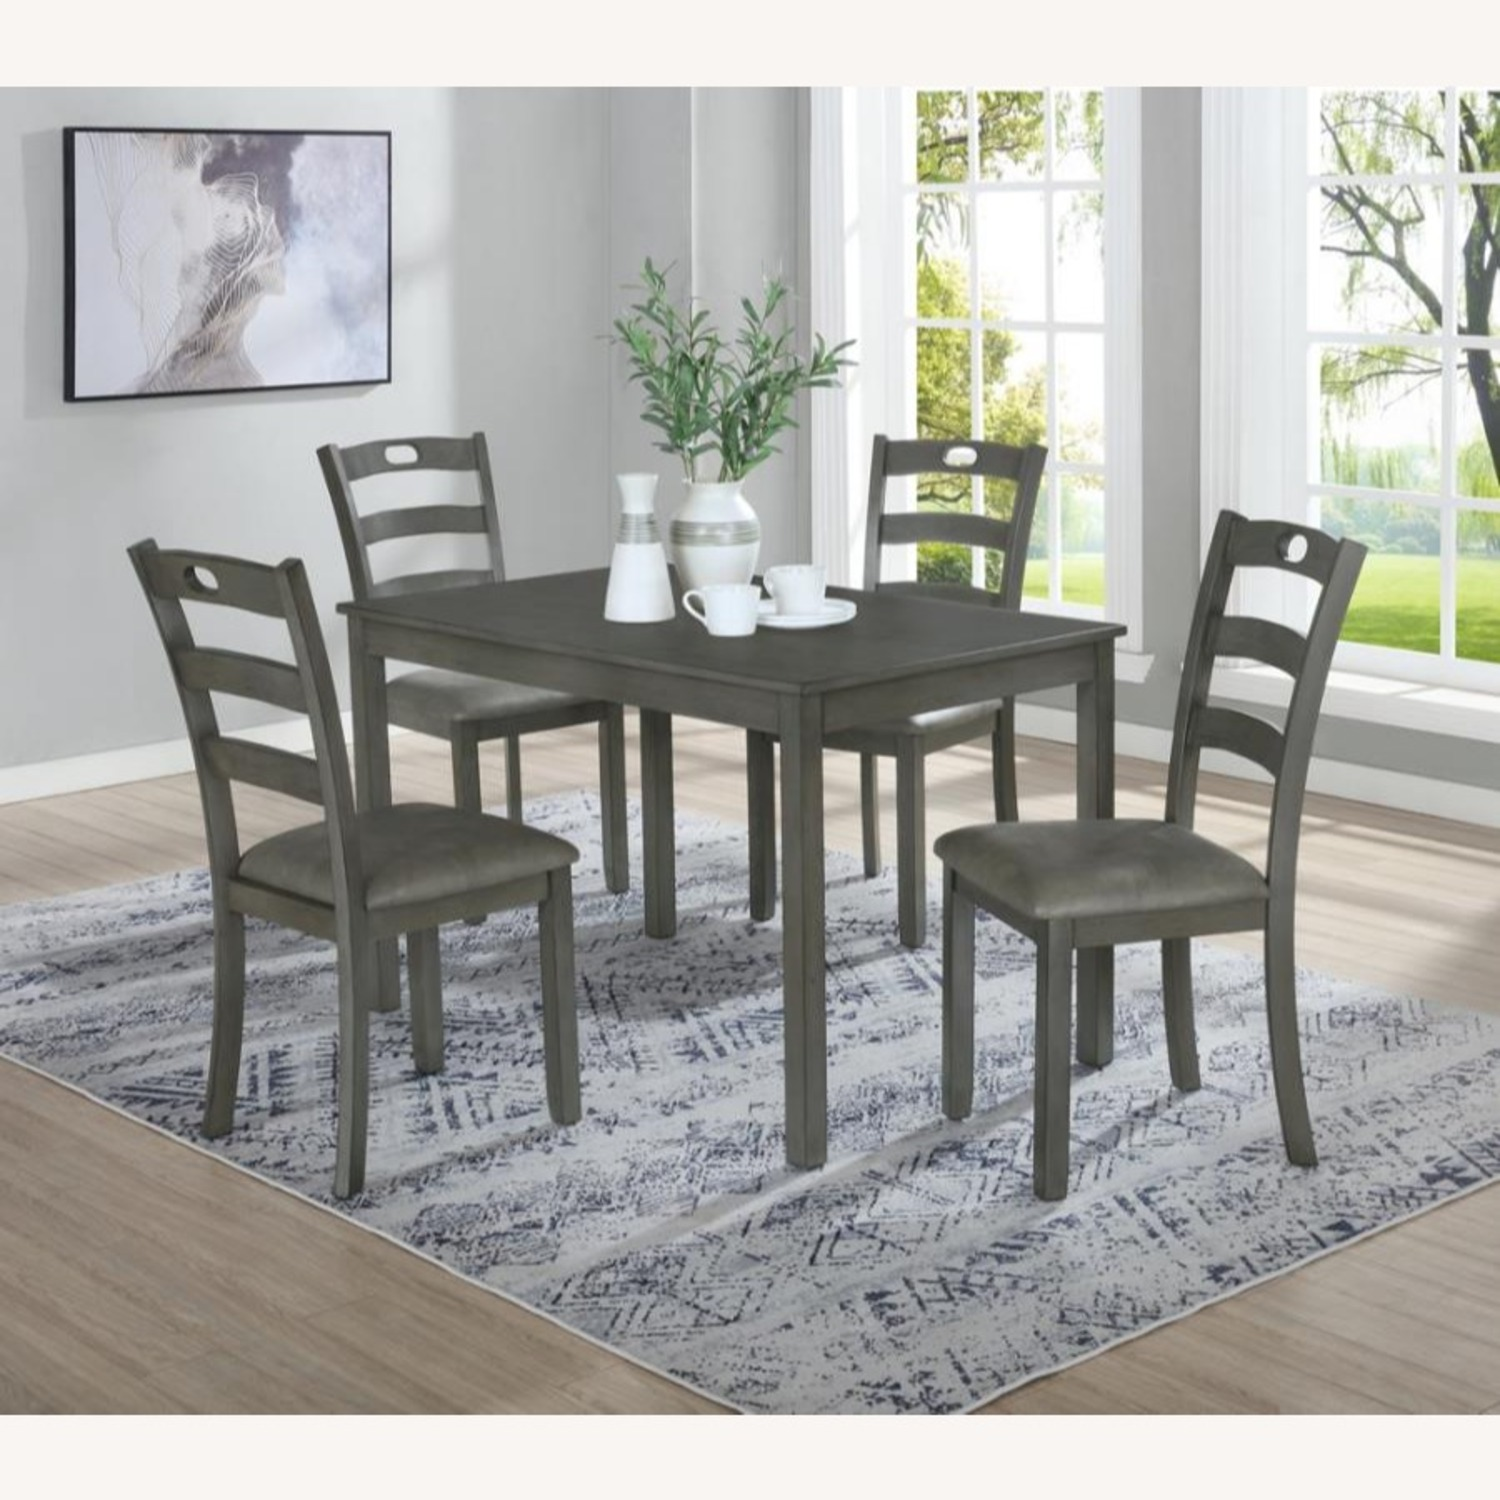 5-Piece Dining Set In Grey Wood & Fabric Finish - image-5